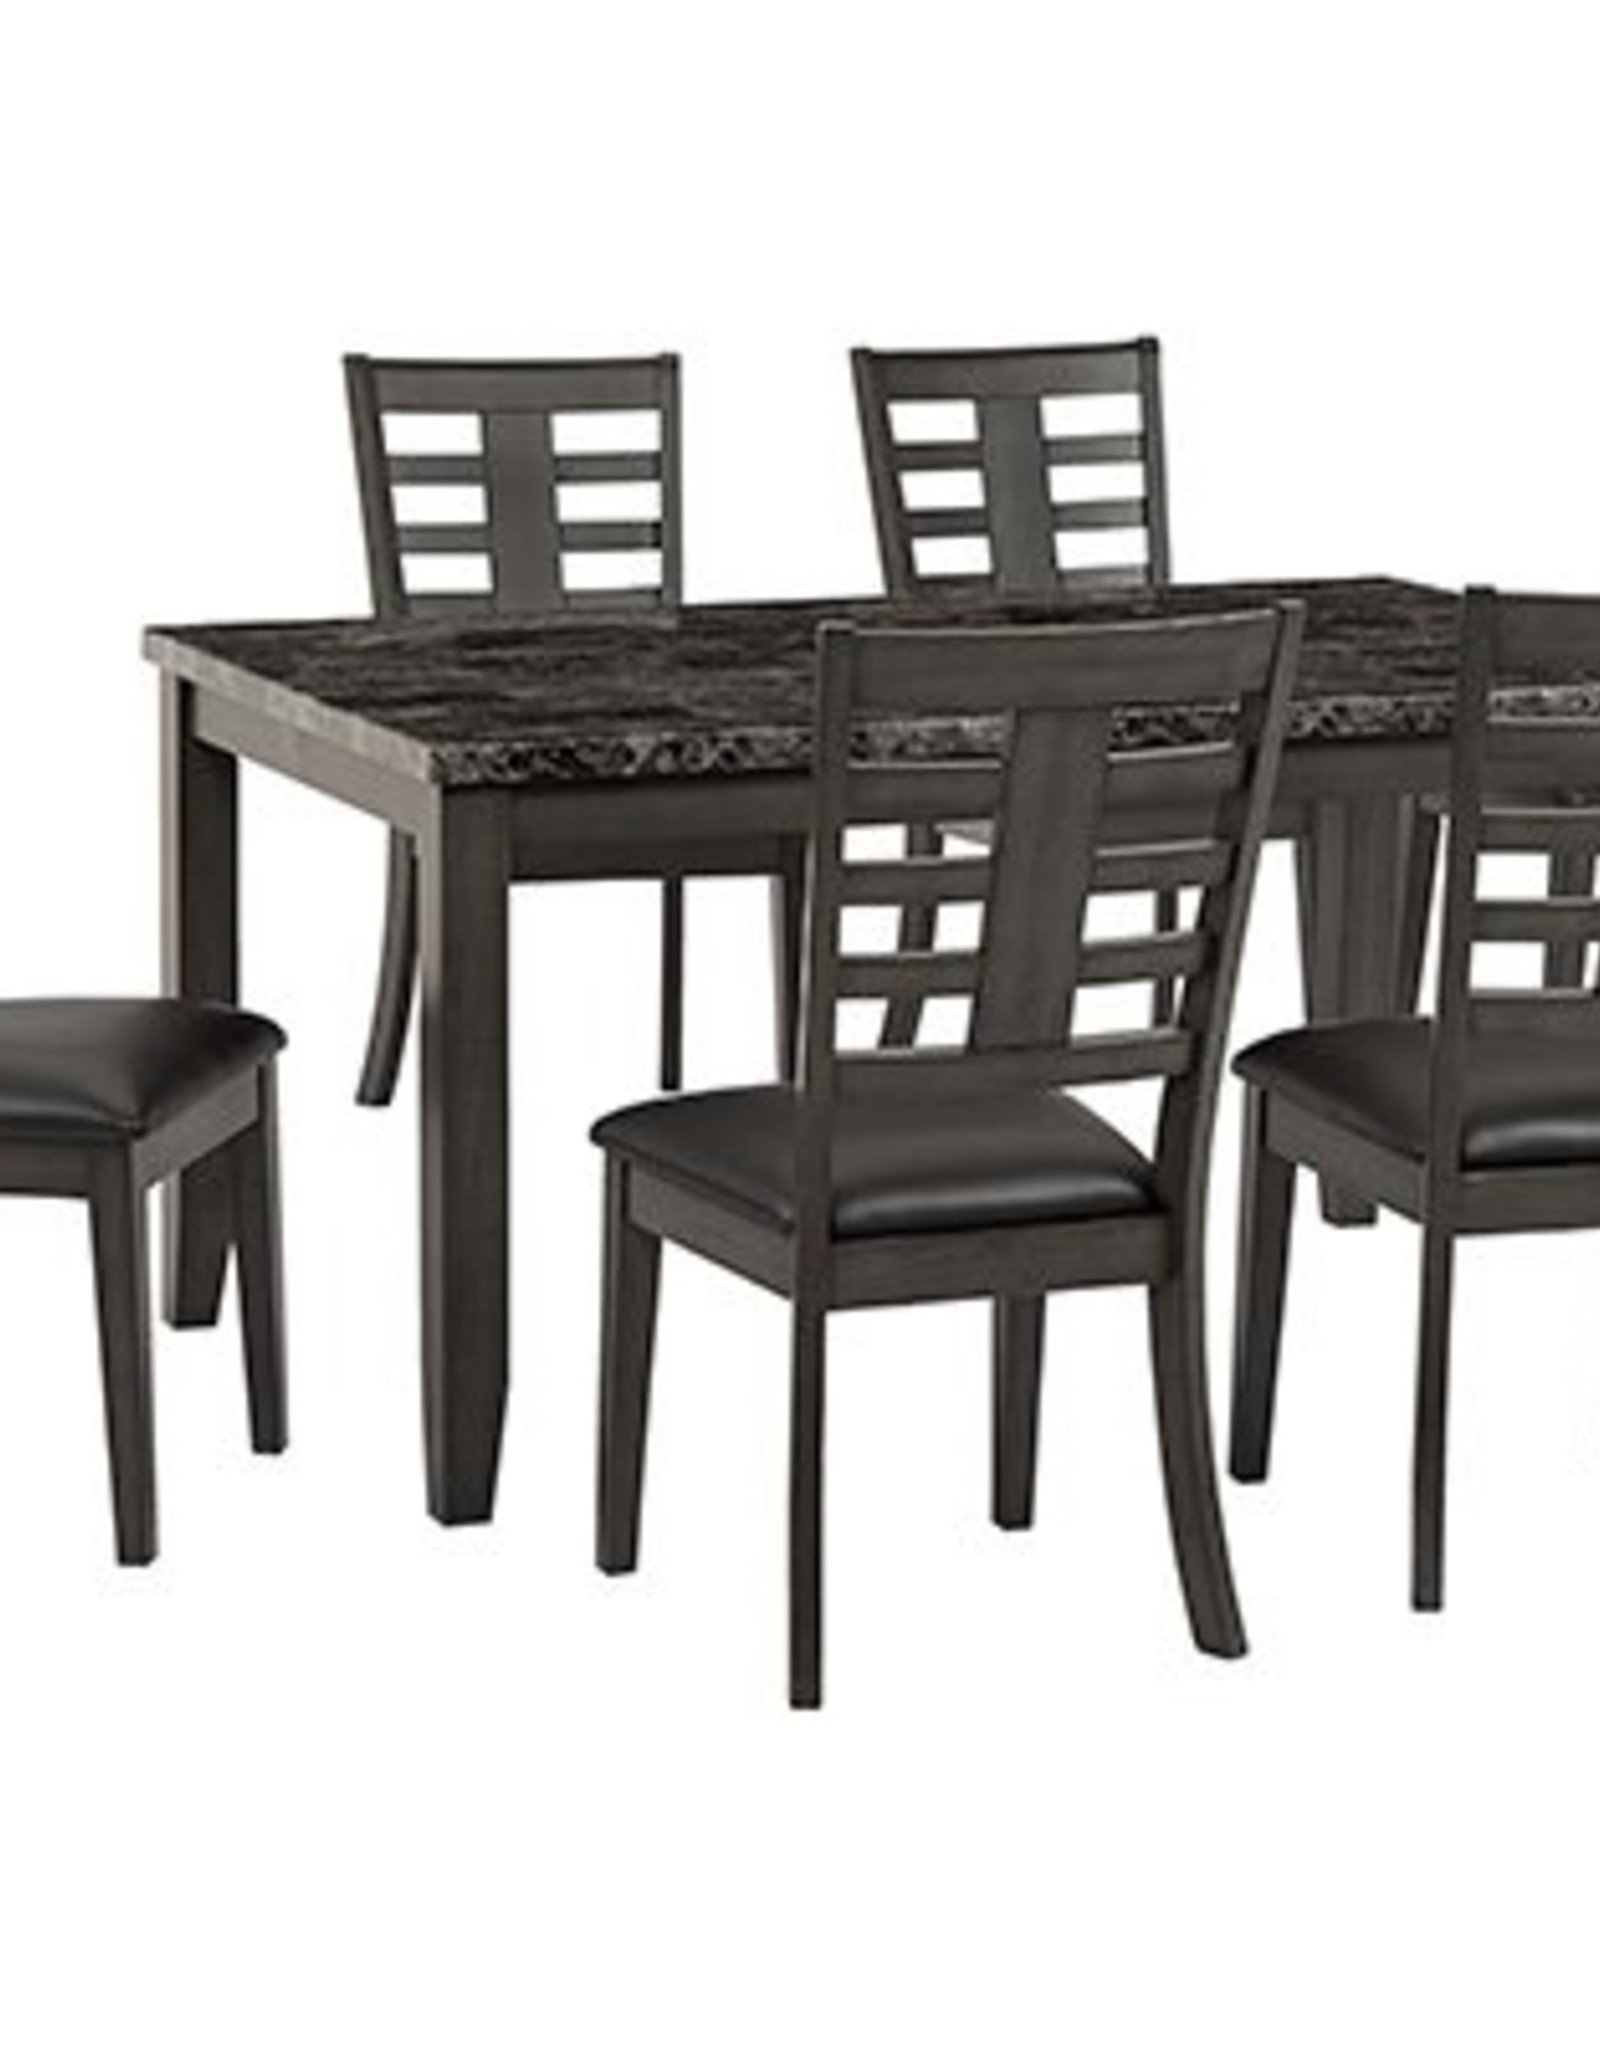 Standard Canaan Table W/6 Chairs